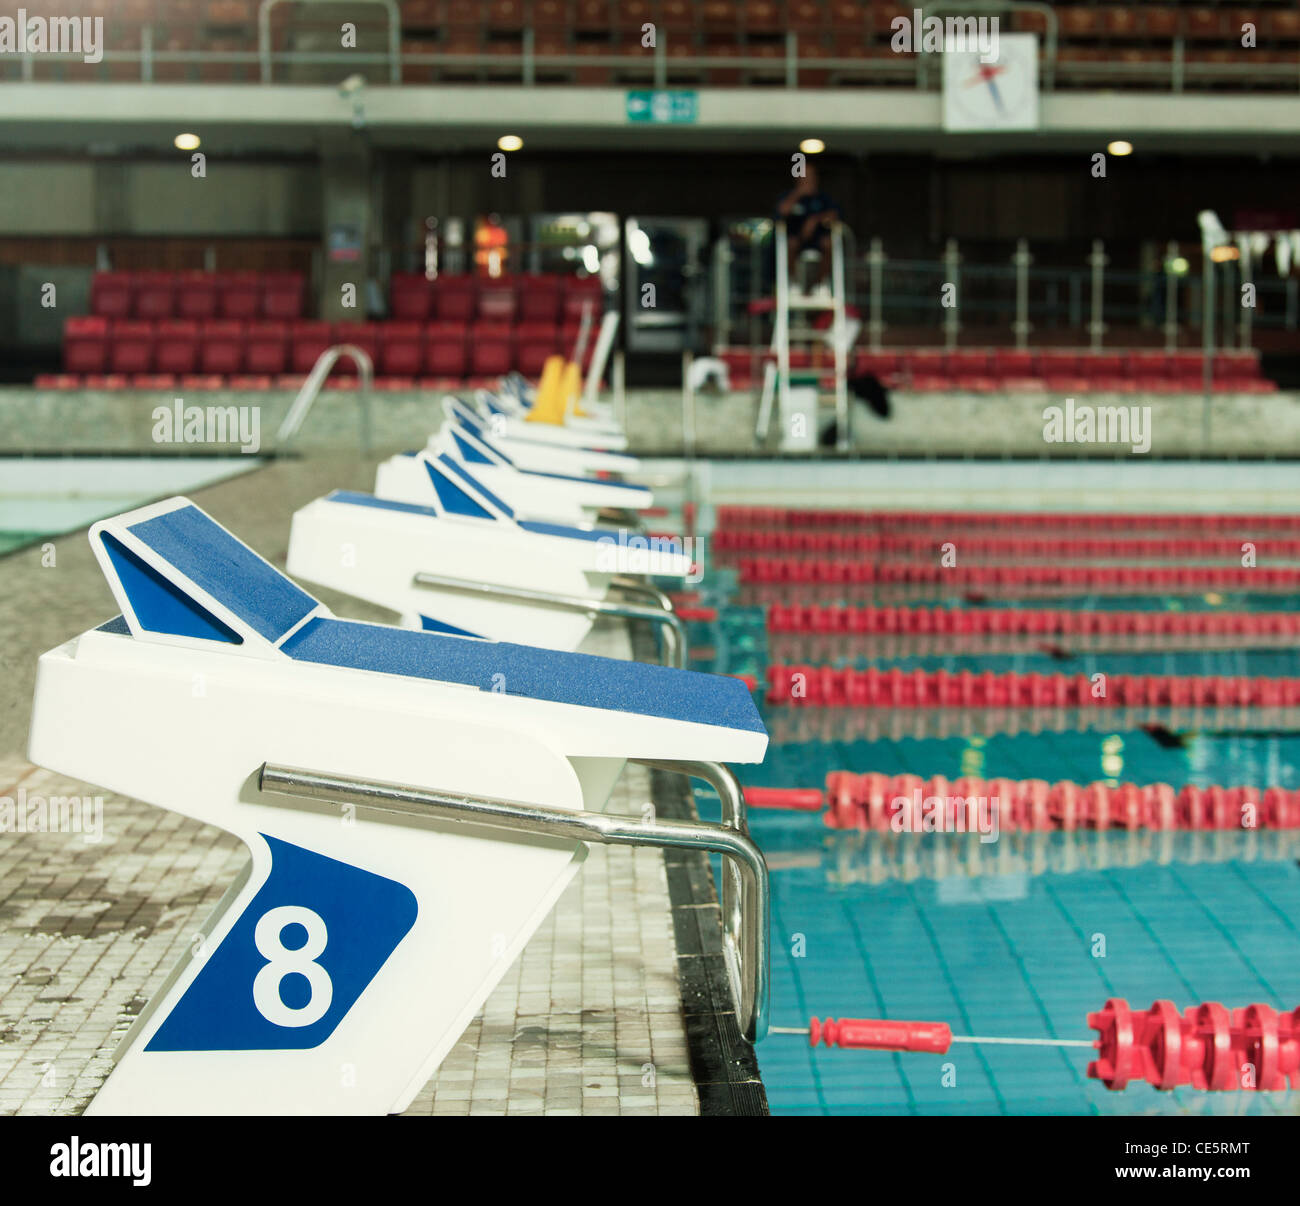 olympic swimming pool starting blocks